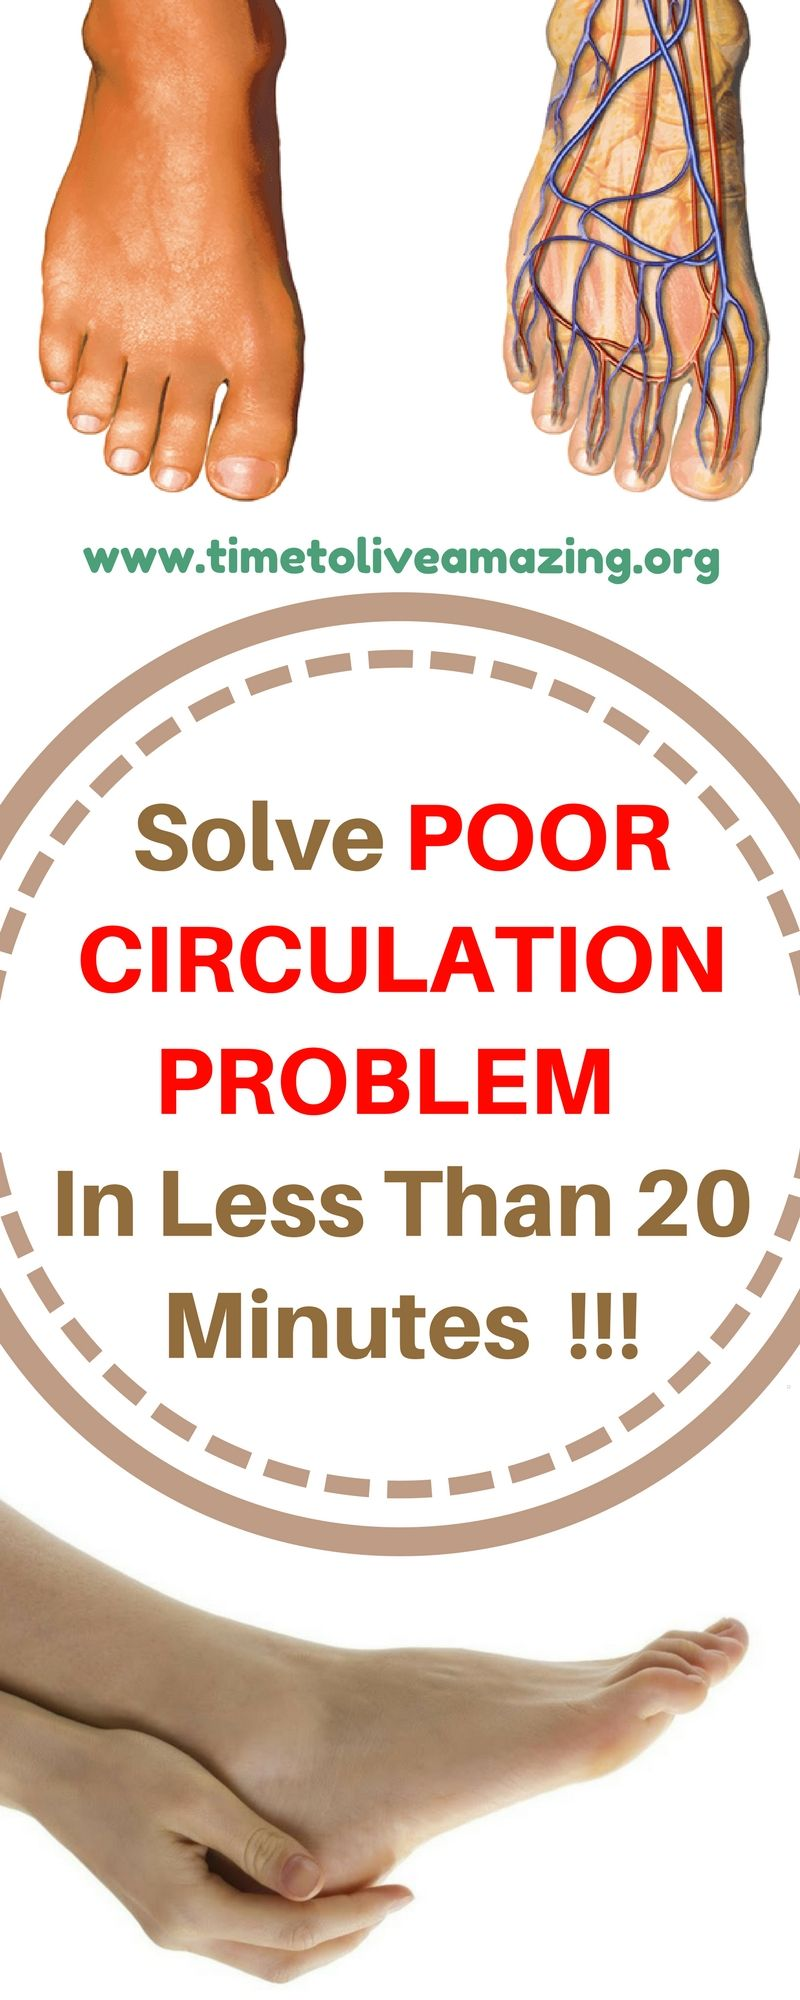 Solve POOR CIRCULATION PROBLEM In Less Than 20 Minutes